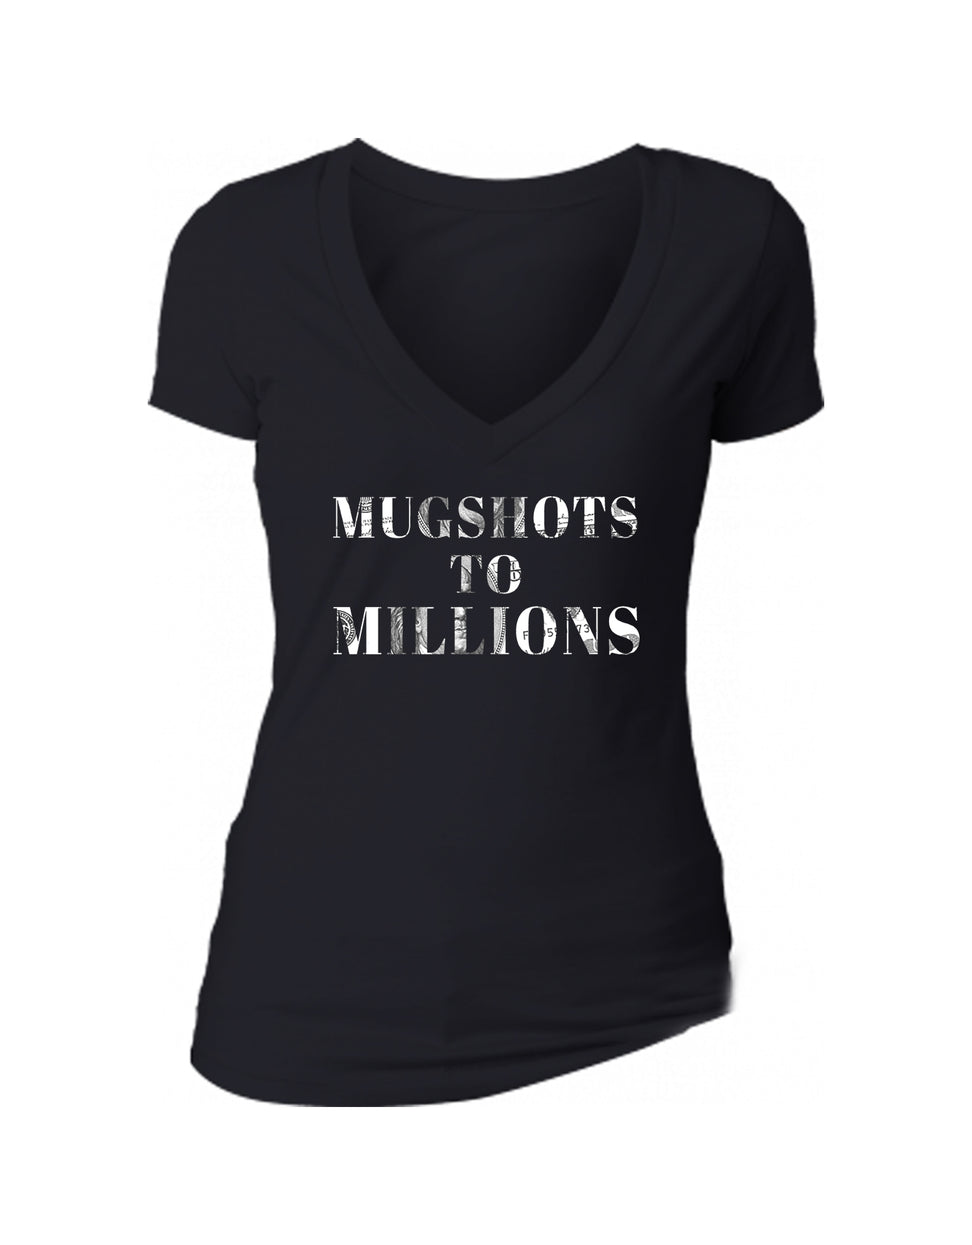 MUGSHOTS TO MILLIONS - women's short sleeve deep v tee